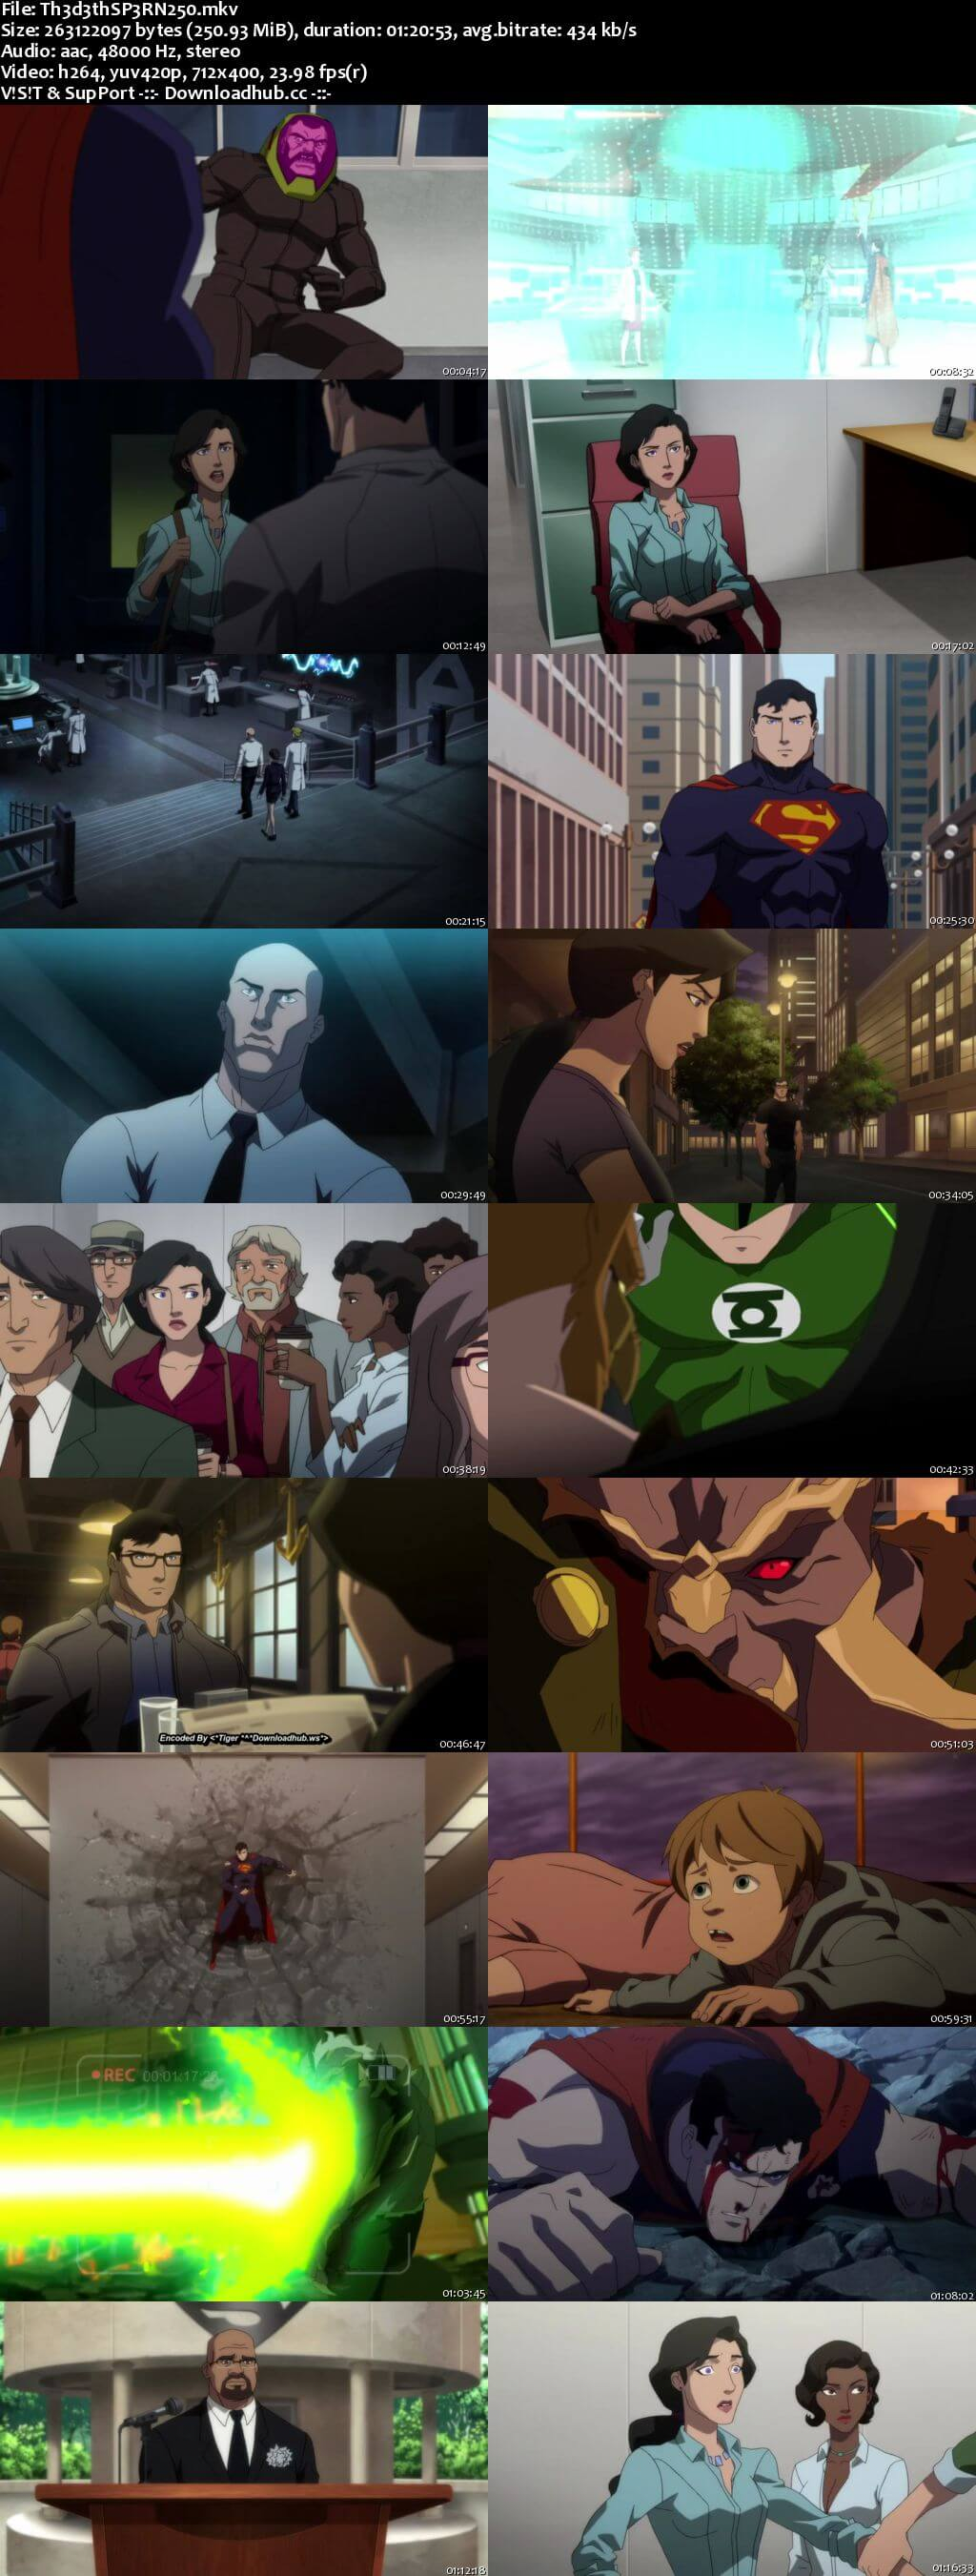 The Death of Superman 2018 English 480p Web-DL